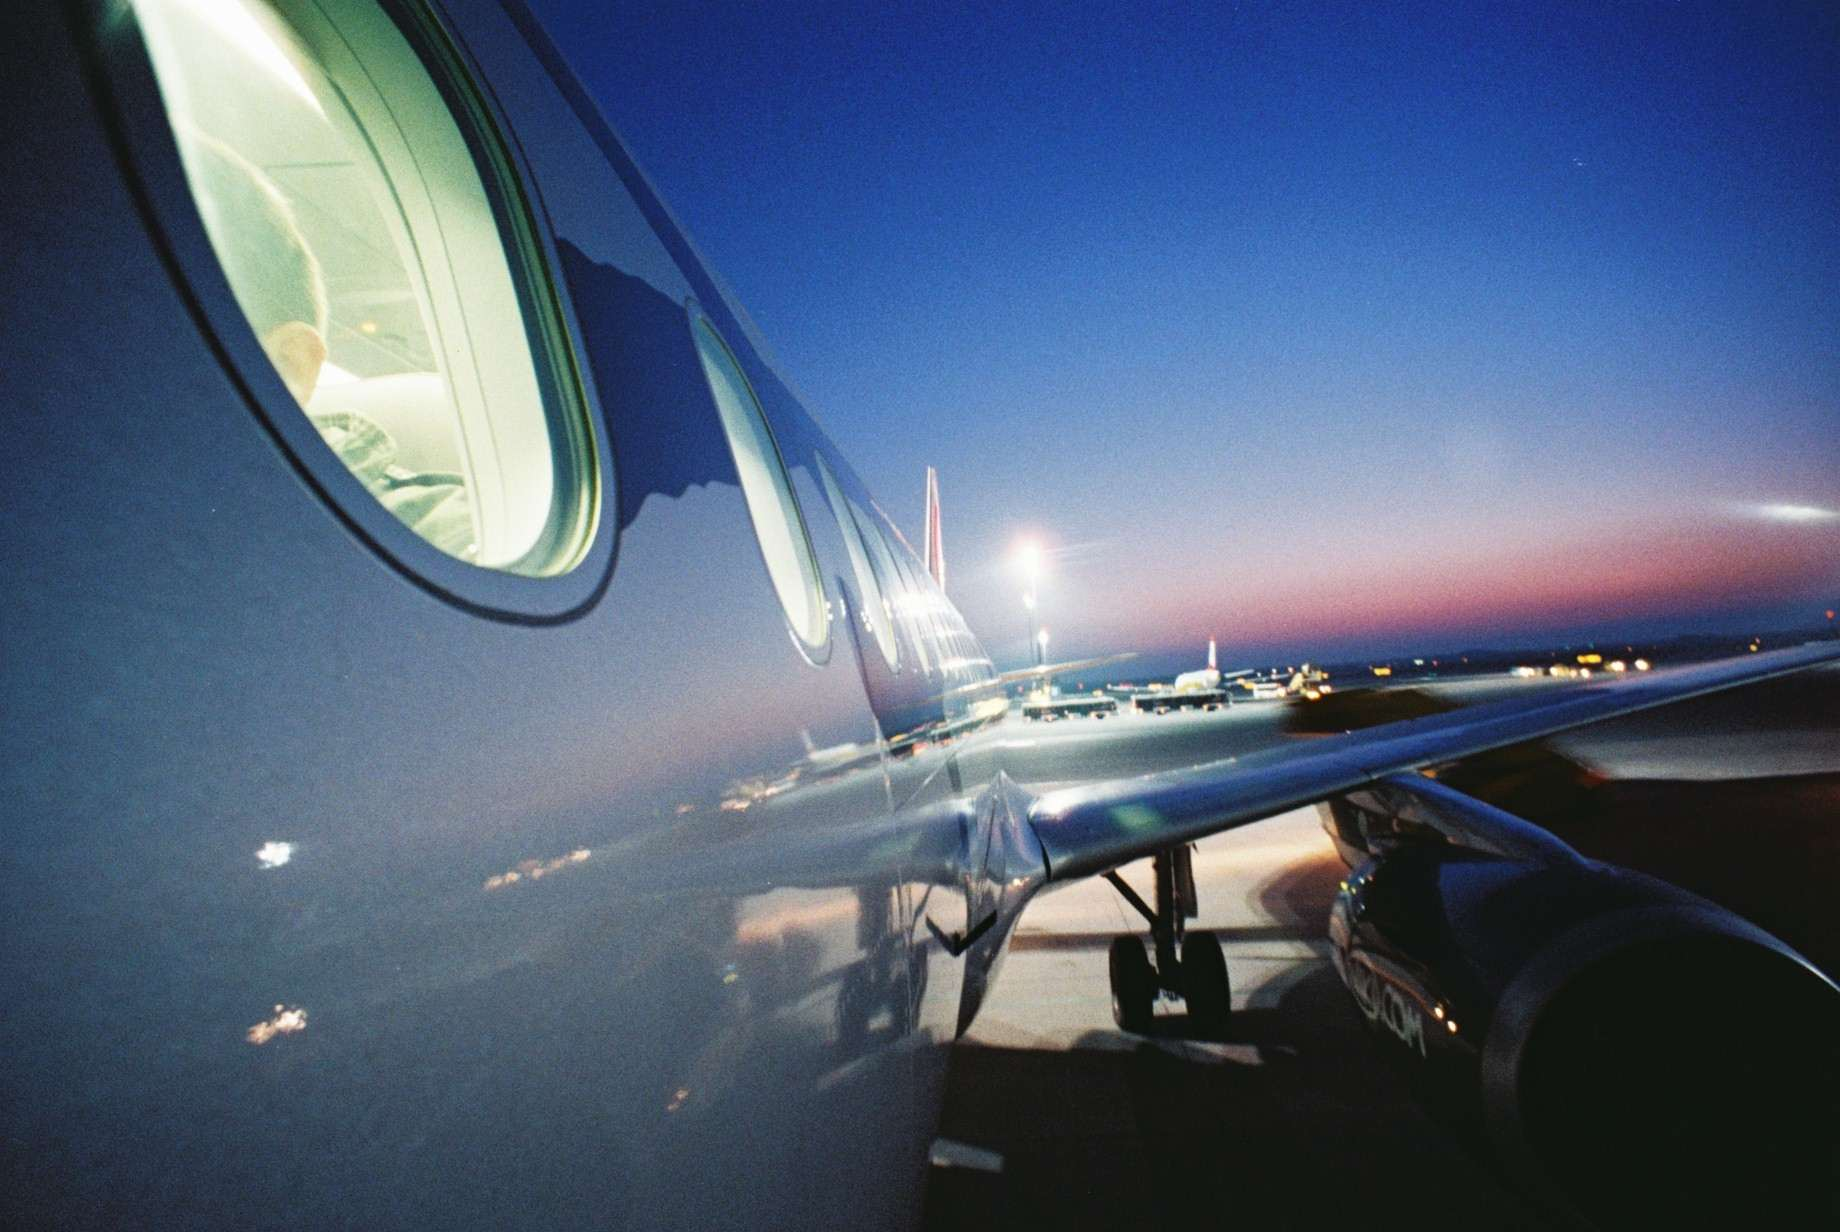 The side of an airplane at dusk.